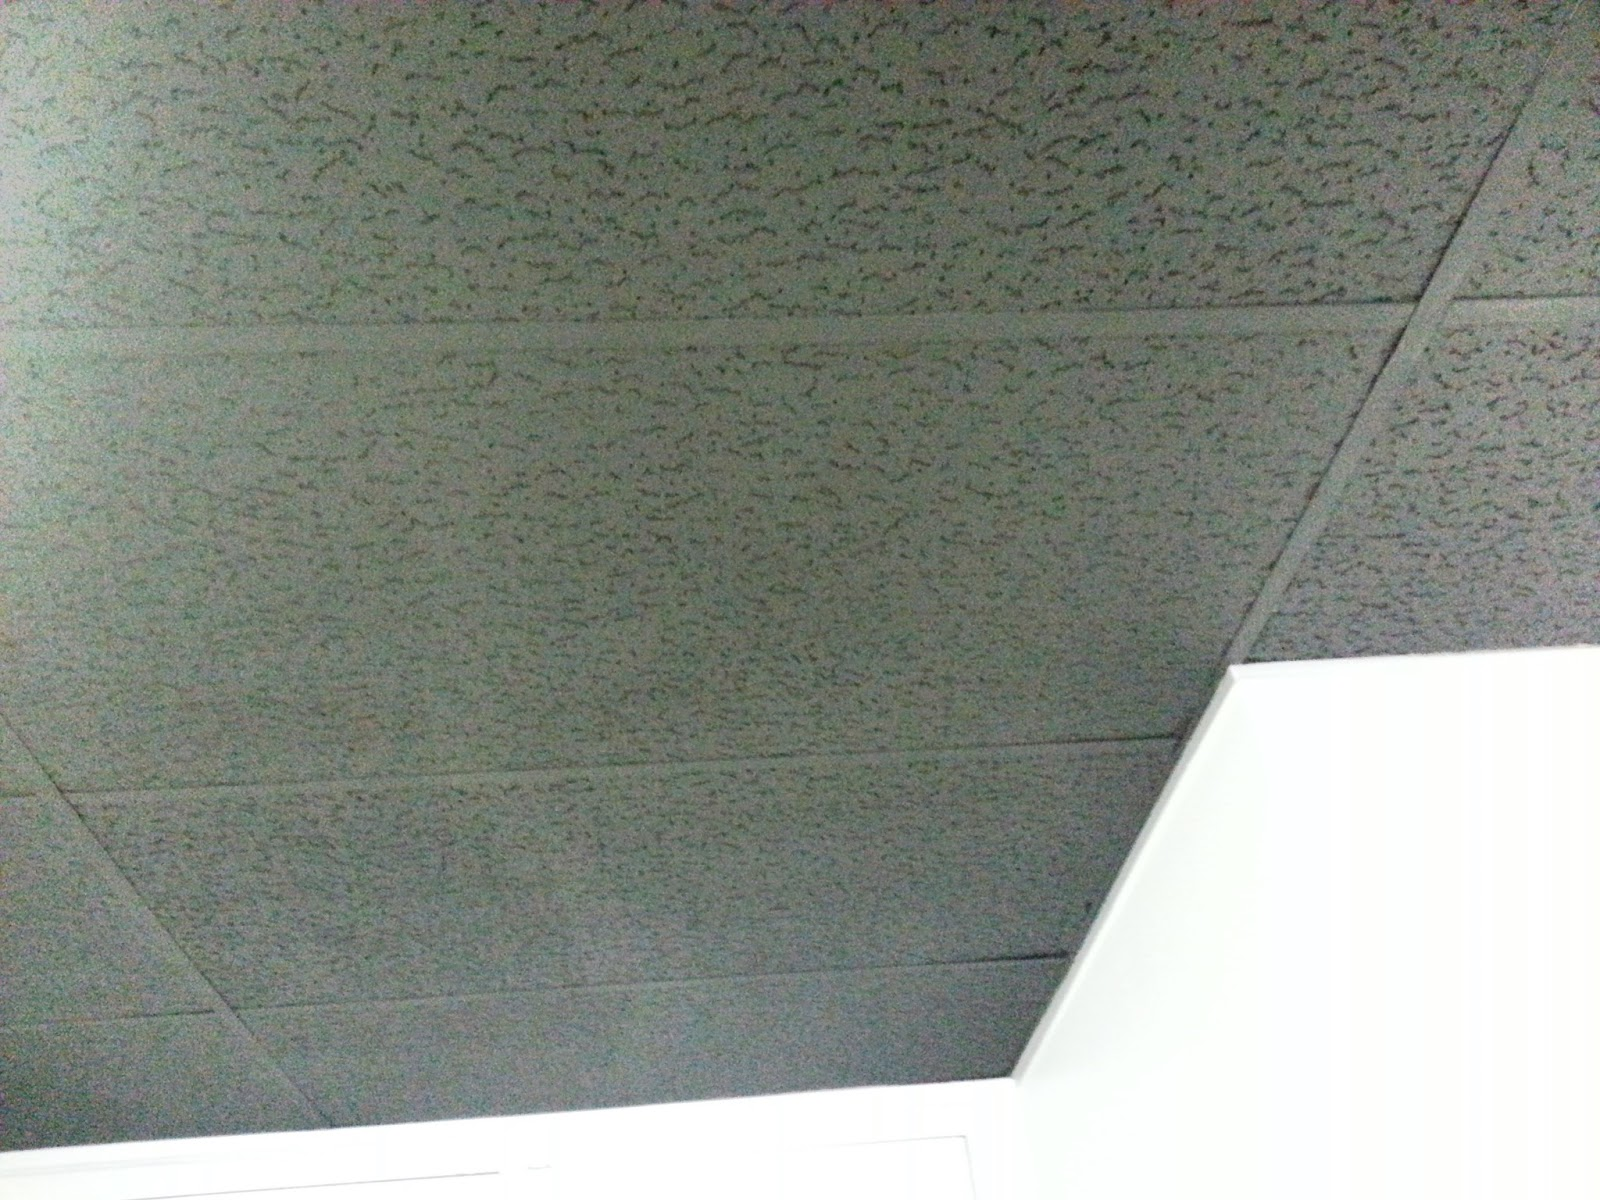 Spray paint for ceiling tiles